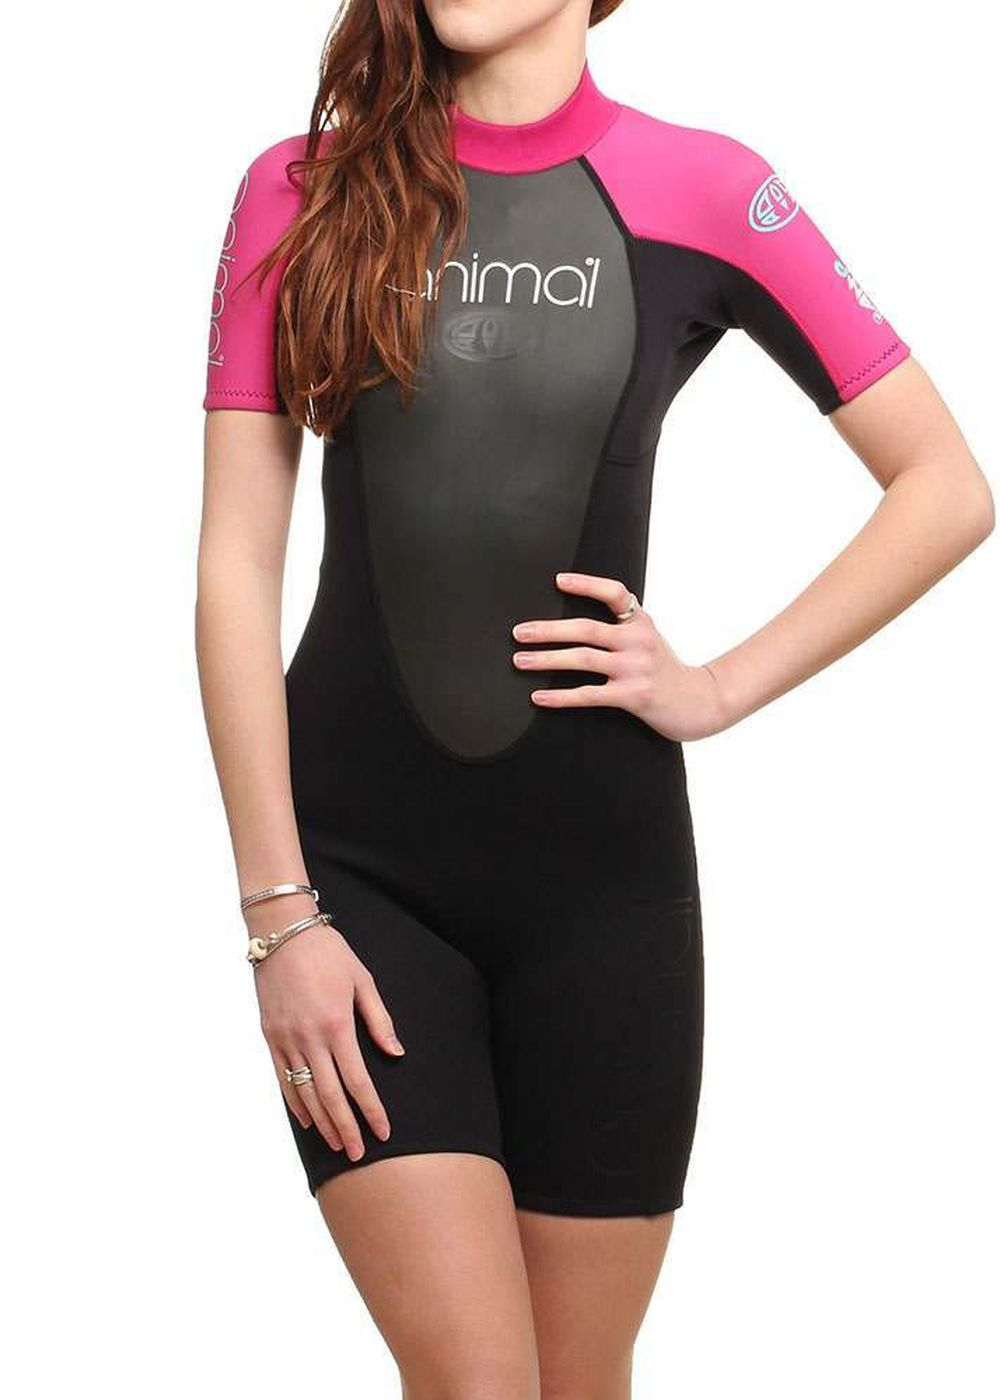 ANIMAL WOMENS AMP 3/2 SHORTY WETSUIT 15 Pink